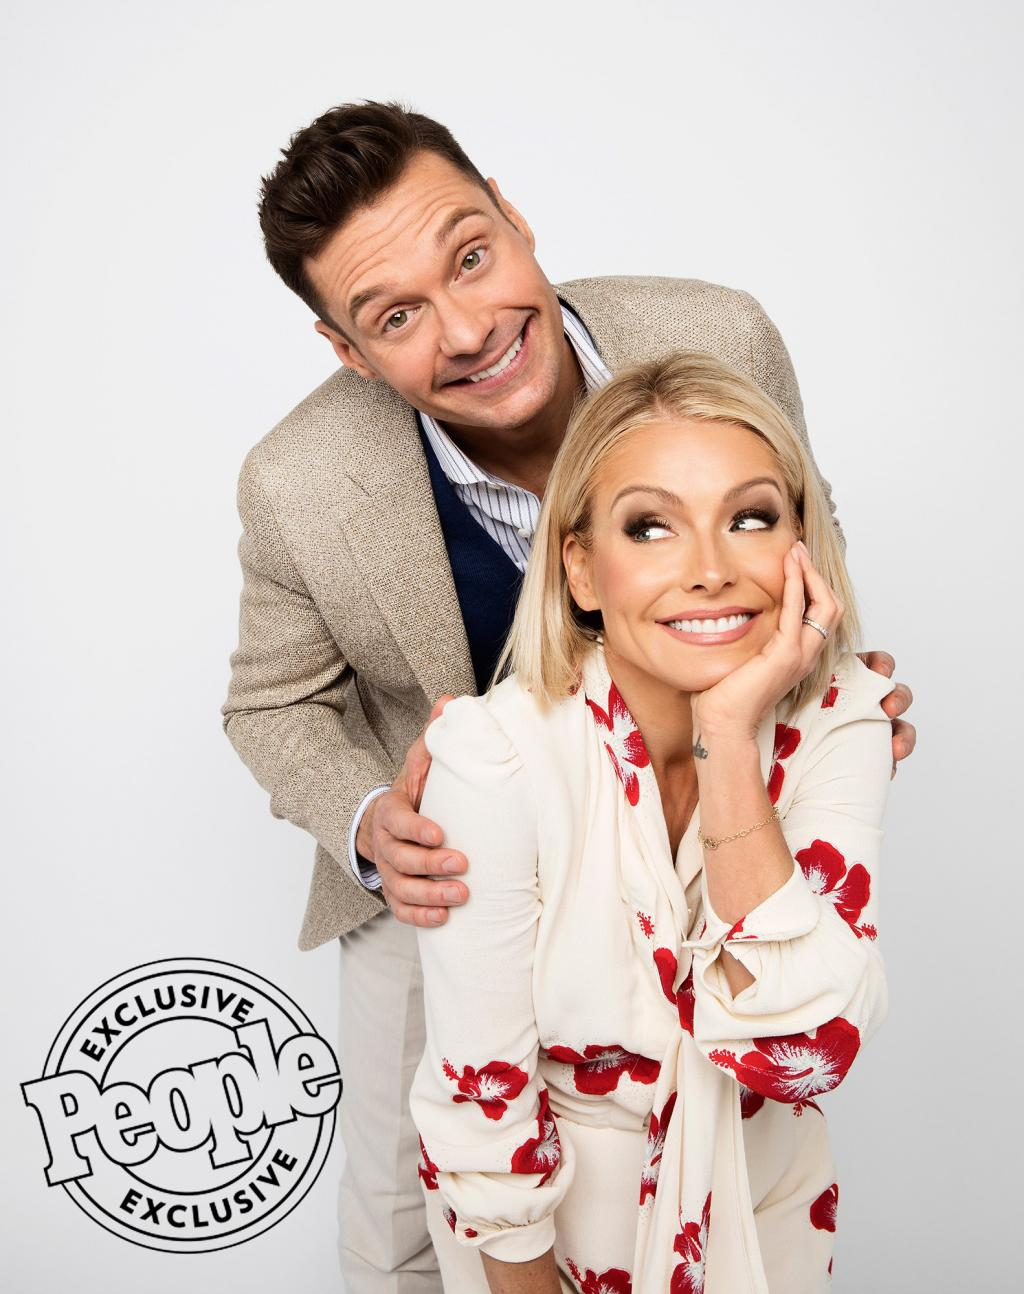 Ryan Seacrest Is Already a Fixture in Kelly Ripa's House — and She's BFFs with His Mom